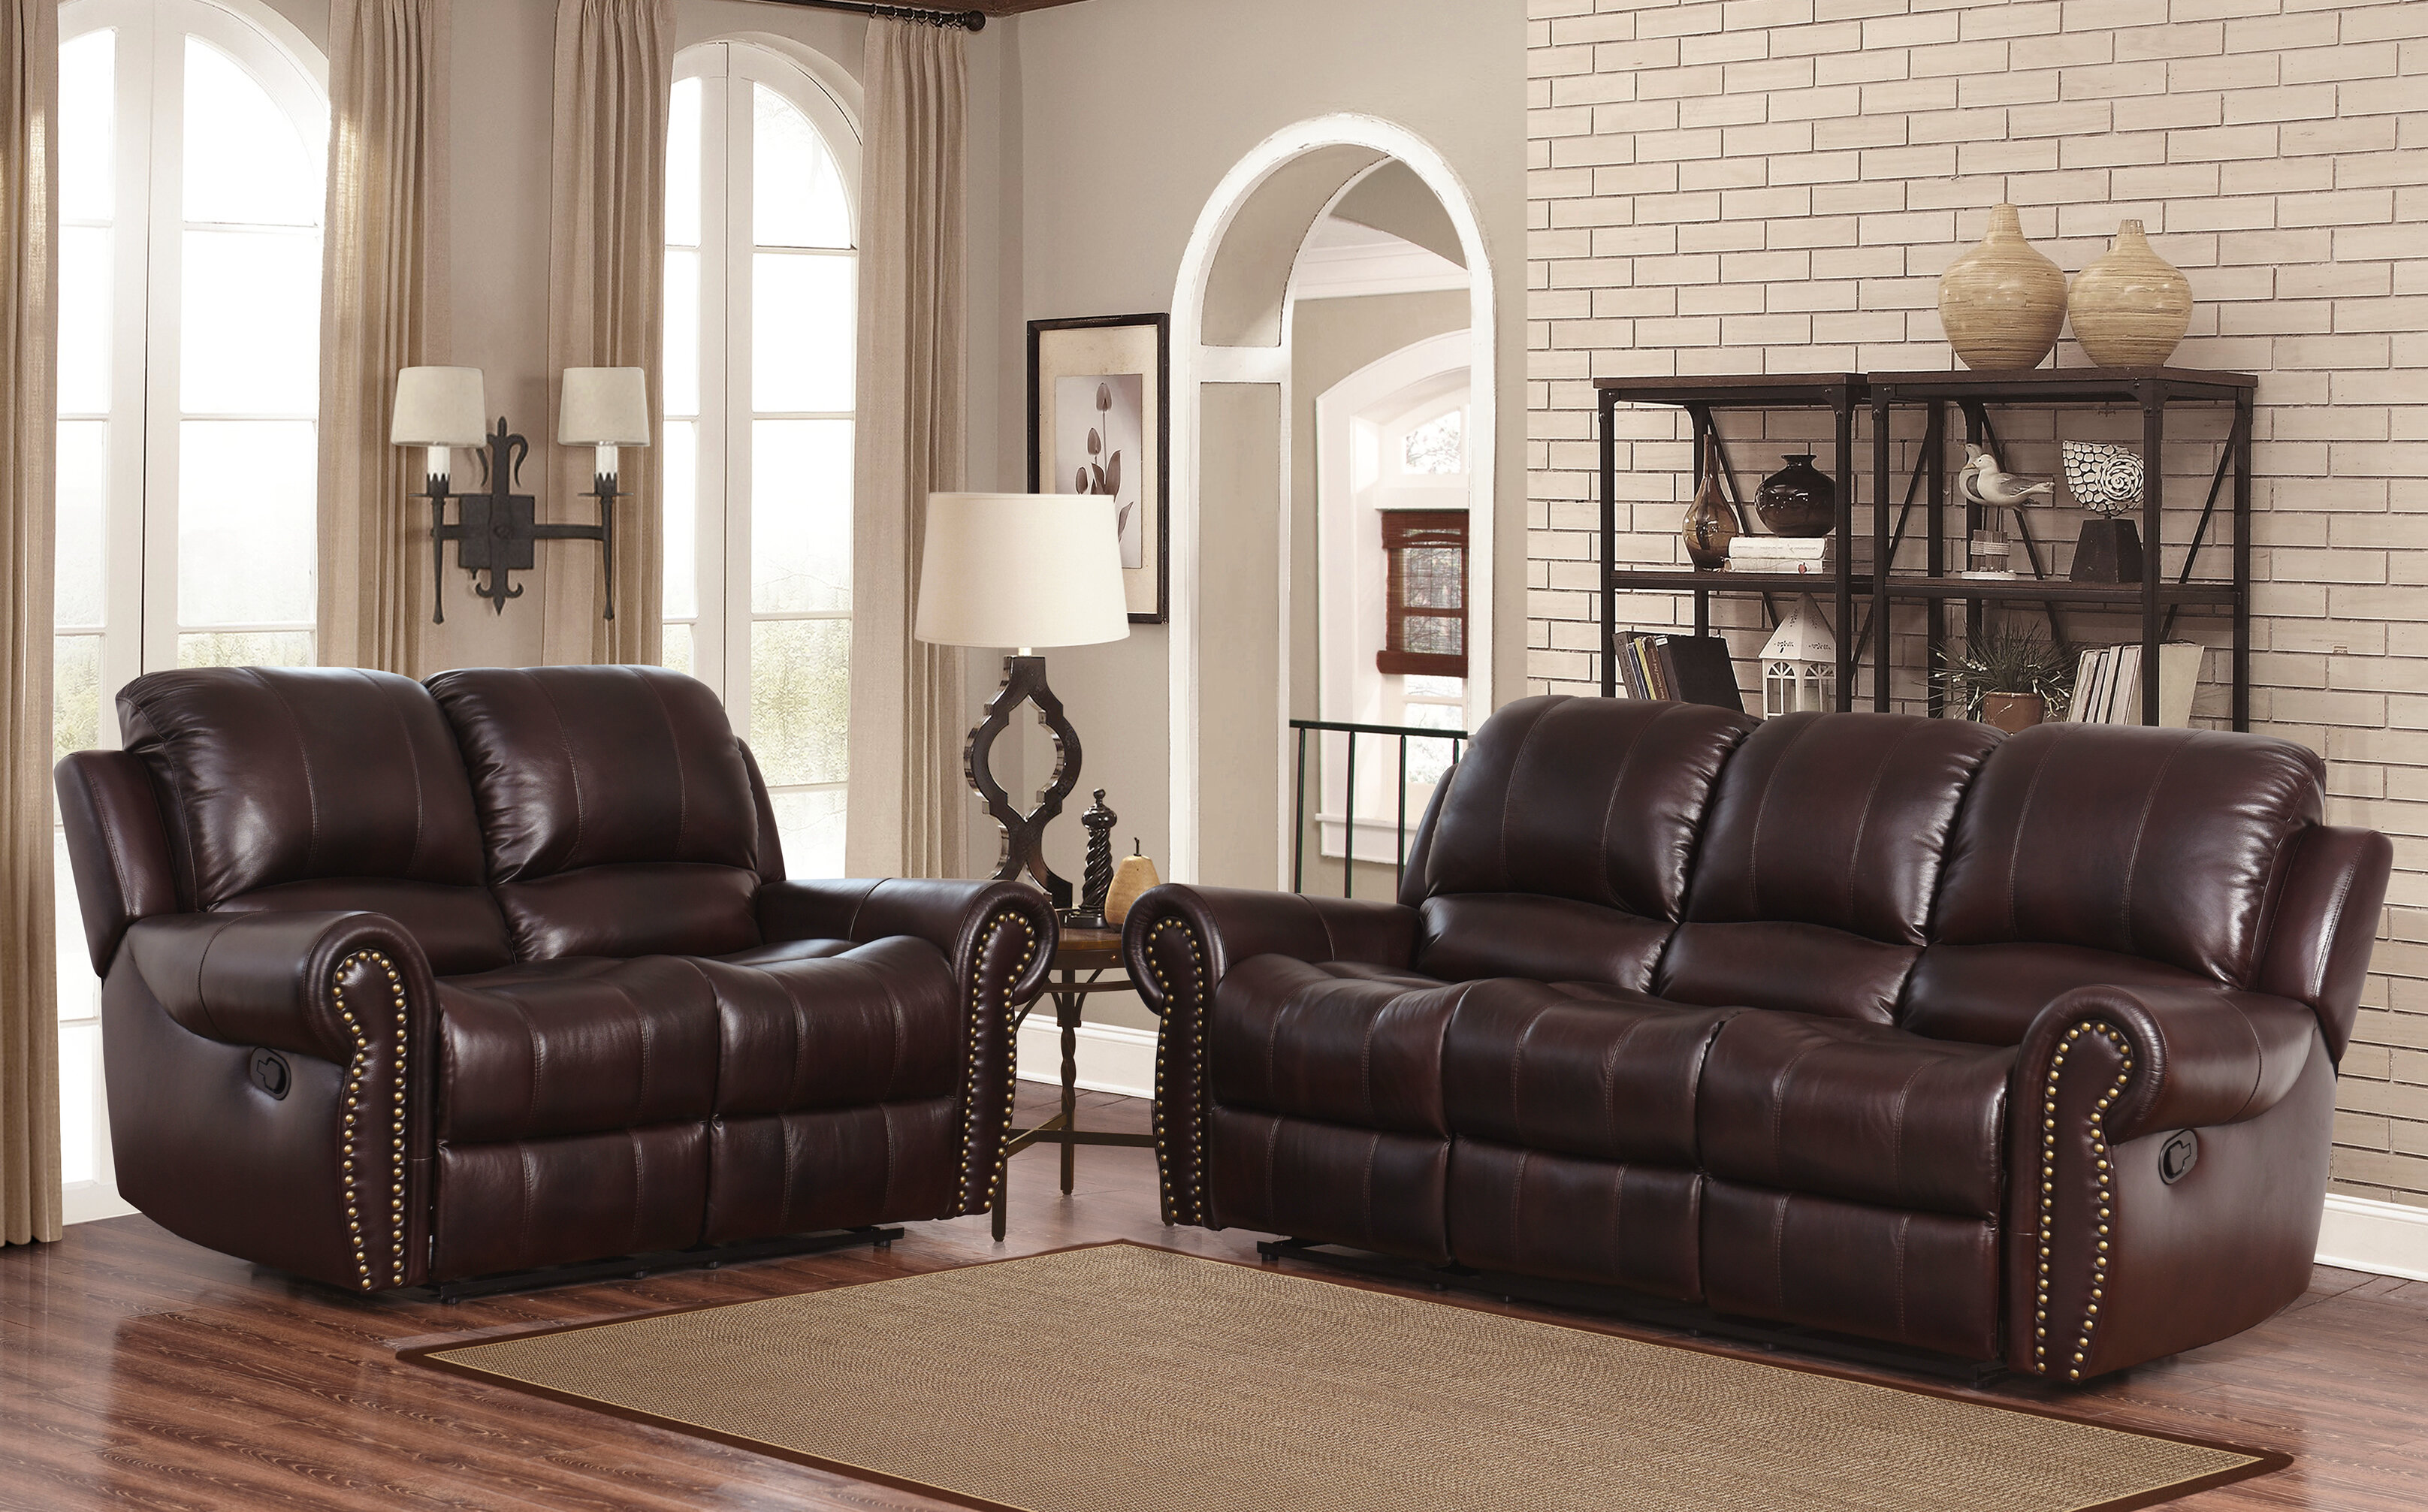 Darby home co barnsdale reclining 2 piece leather living room set reviews wayfair